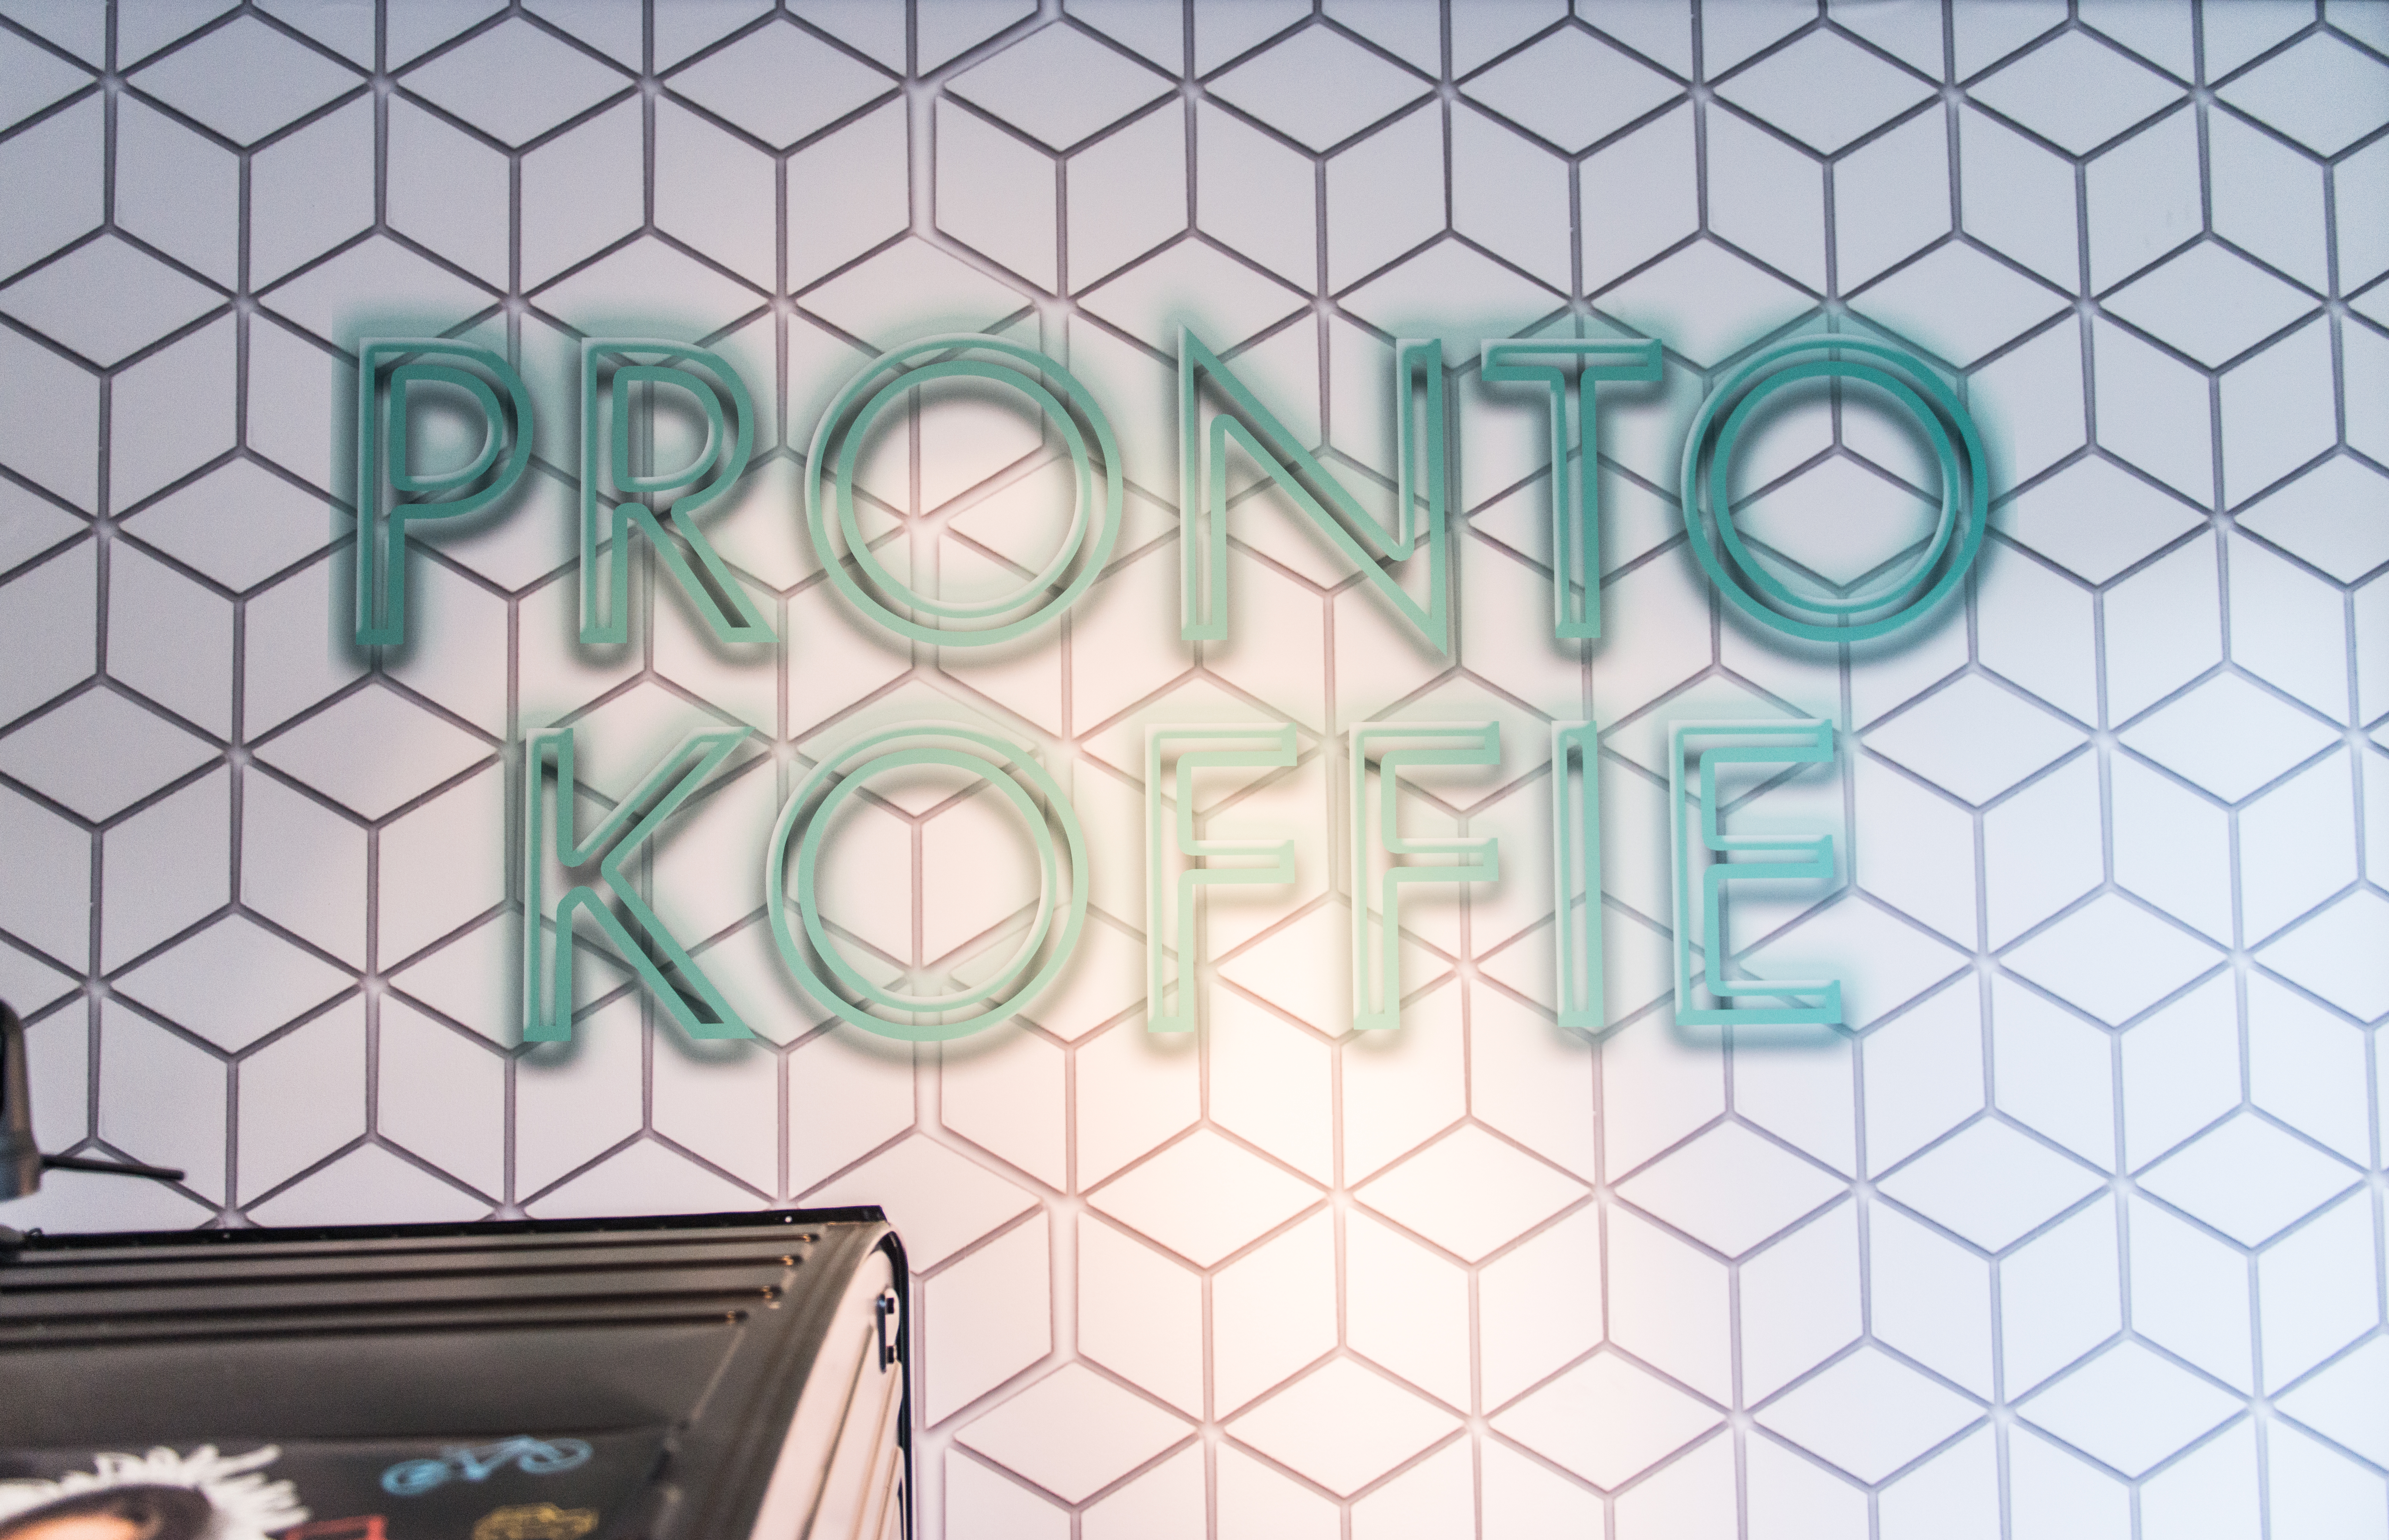 wallprint-pronto-koffie